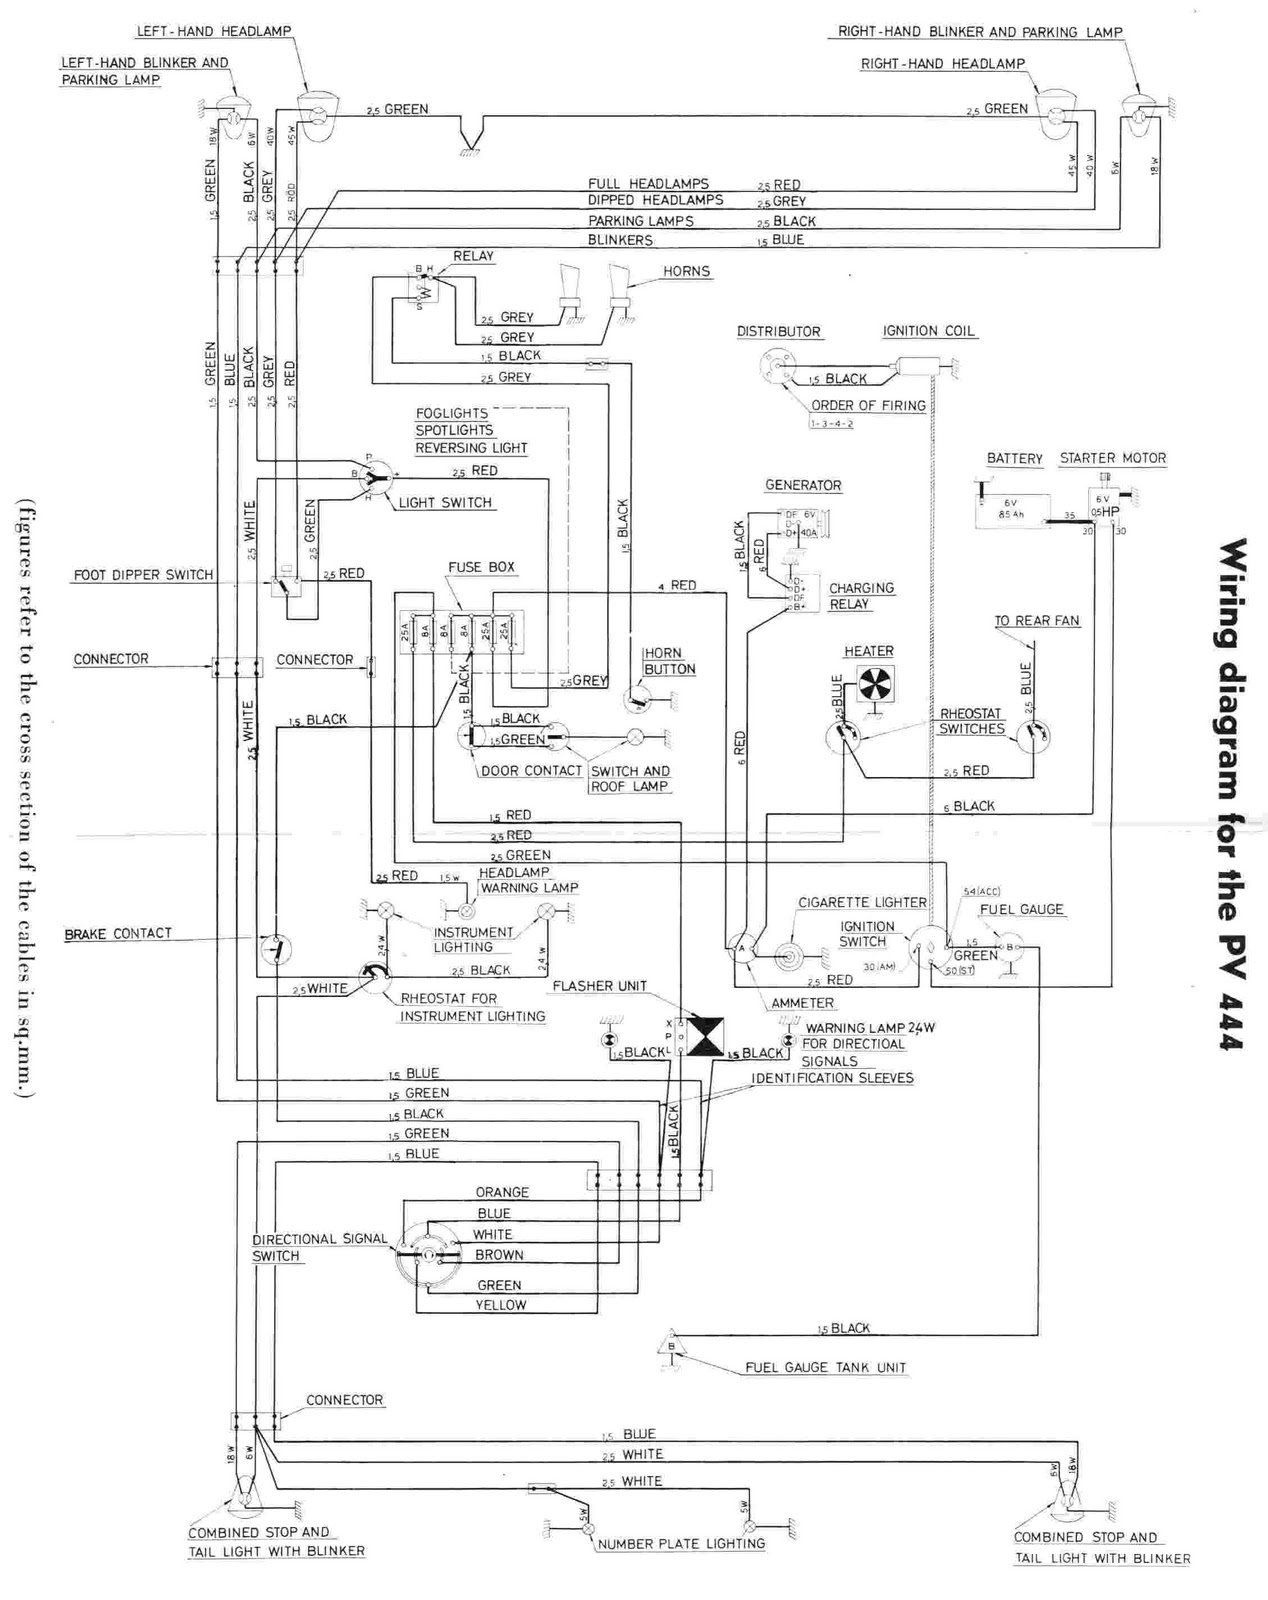 wiring diagram of volvo pv444 | all about wiring diagrams volvo start wiring diagram 2012 honda civic remote start wiring diagram